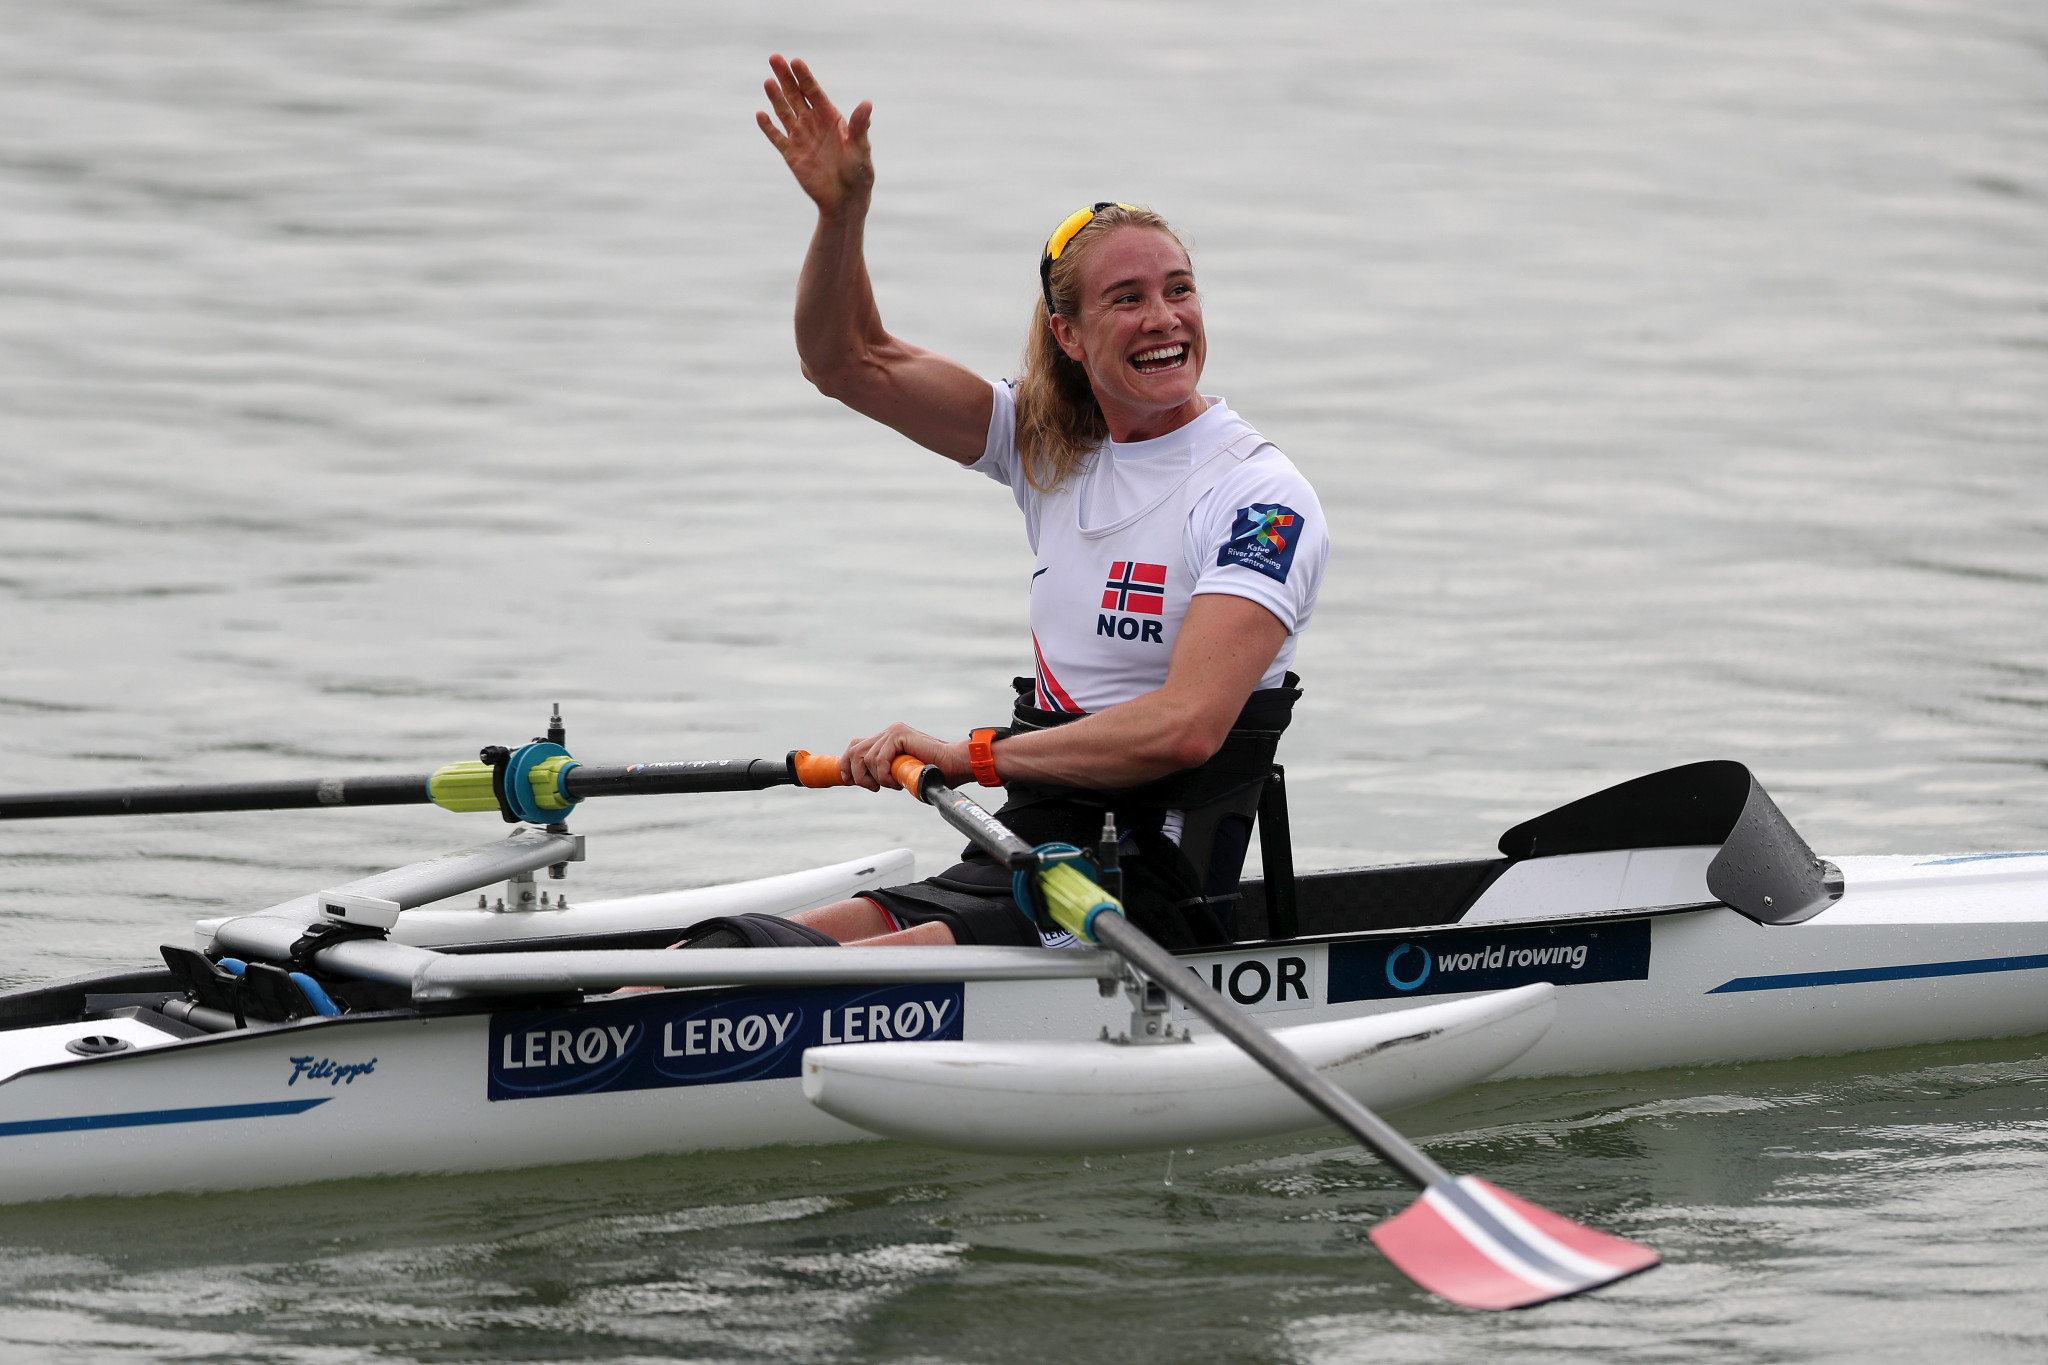 Polianskyi and Skarstein claim PR1 single sculls titles at World Rowing Championships